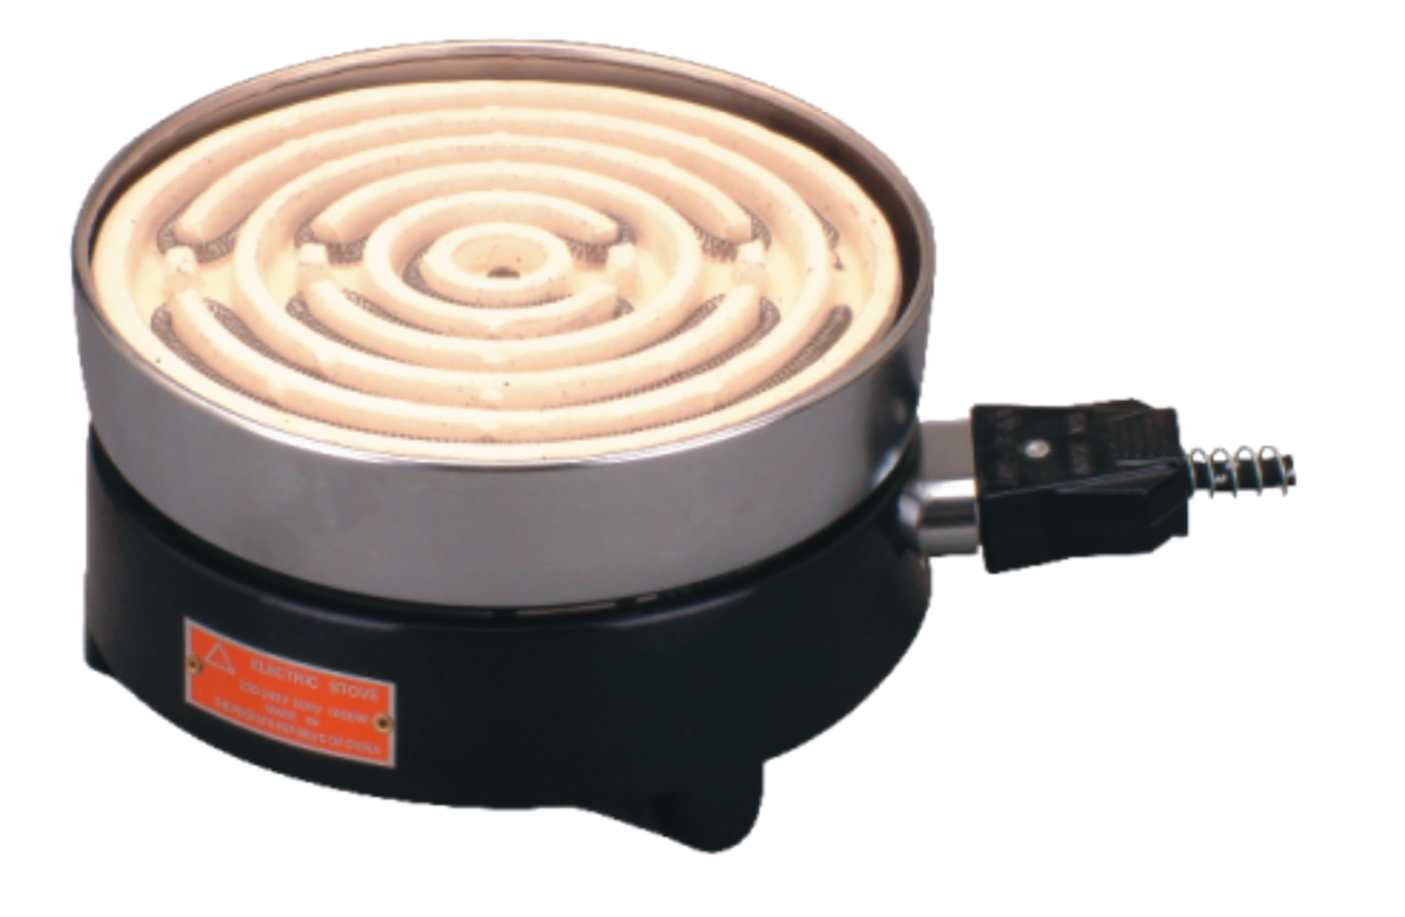 ... the Differences Between an Electric Stove and an Induction Cooker